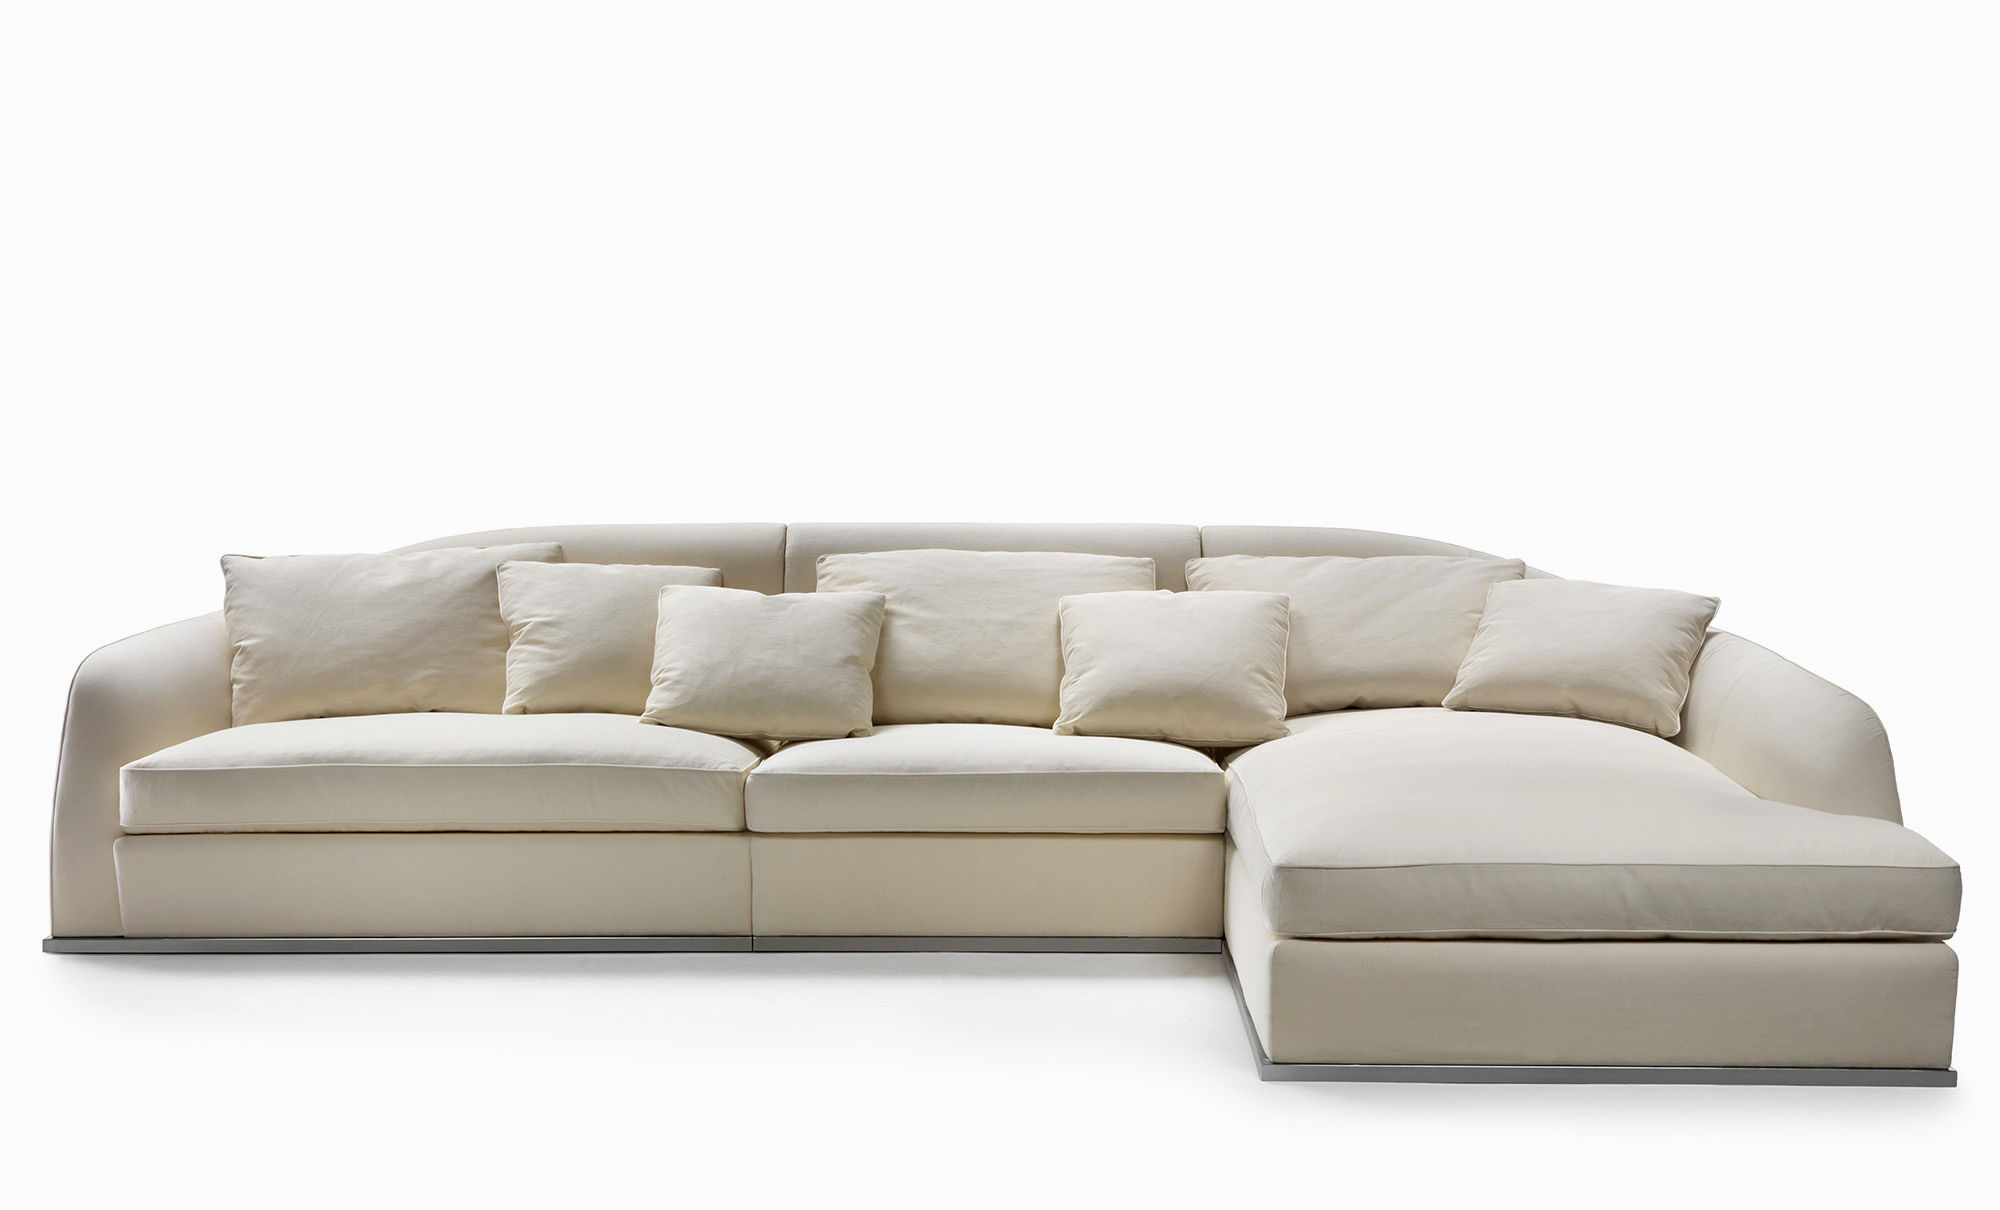 beautiful clearance sectional sofas design-Wonderful Clearance Sectional sofas Inspiration